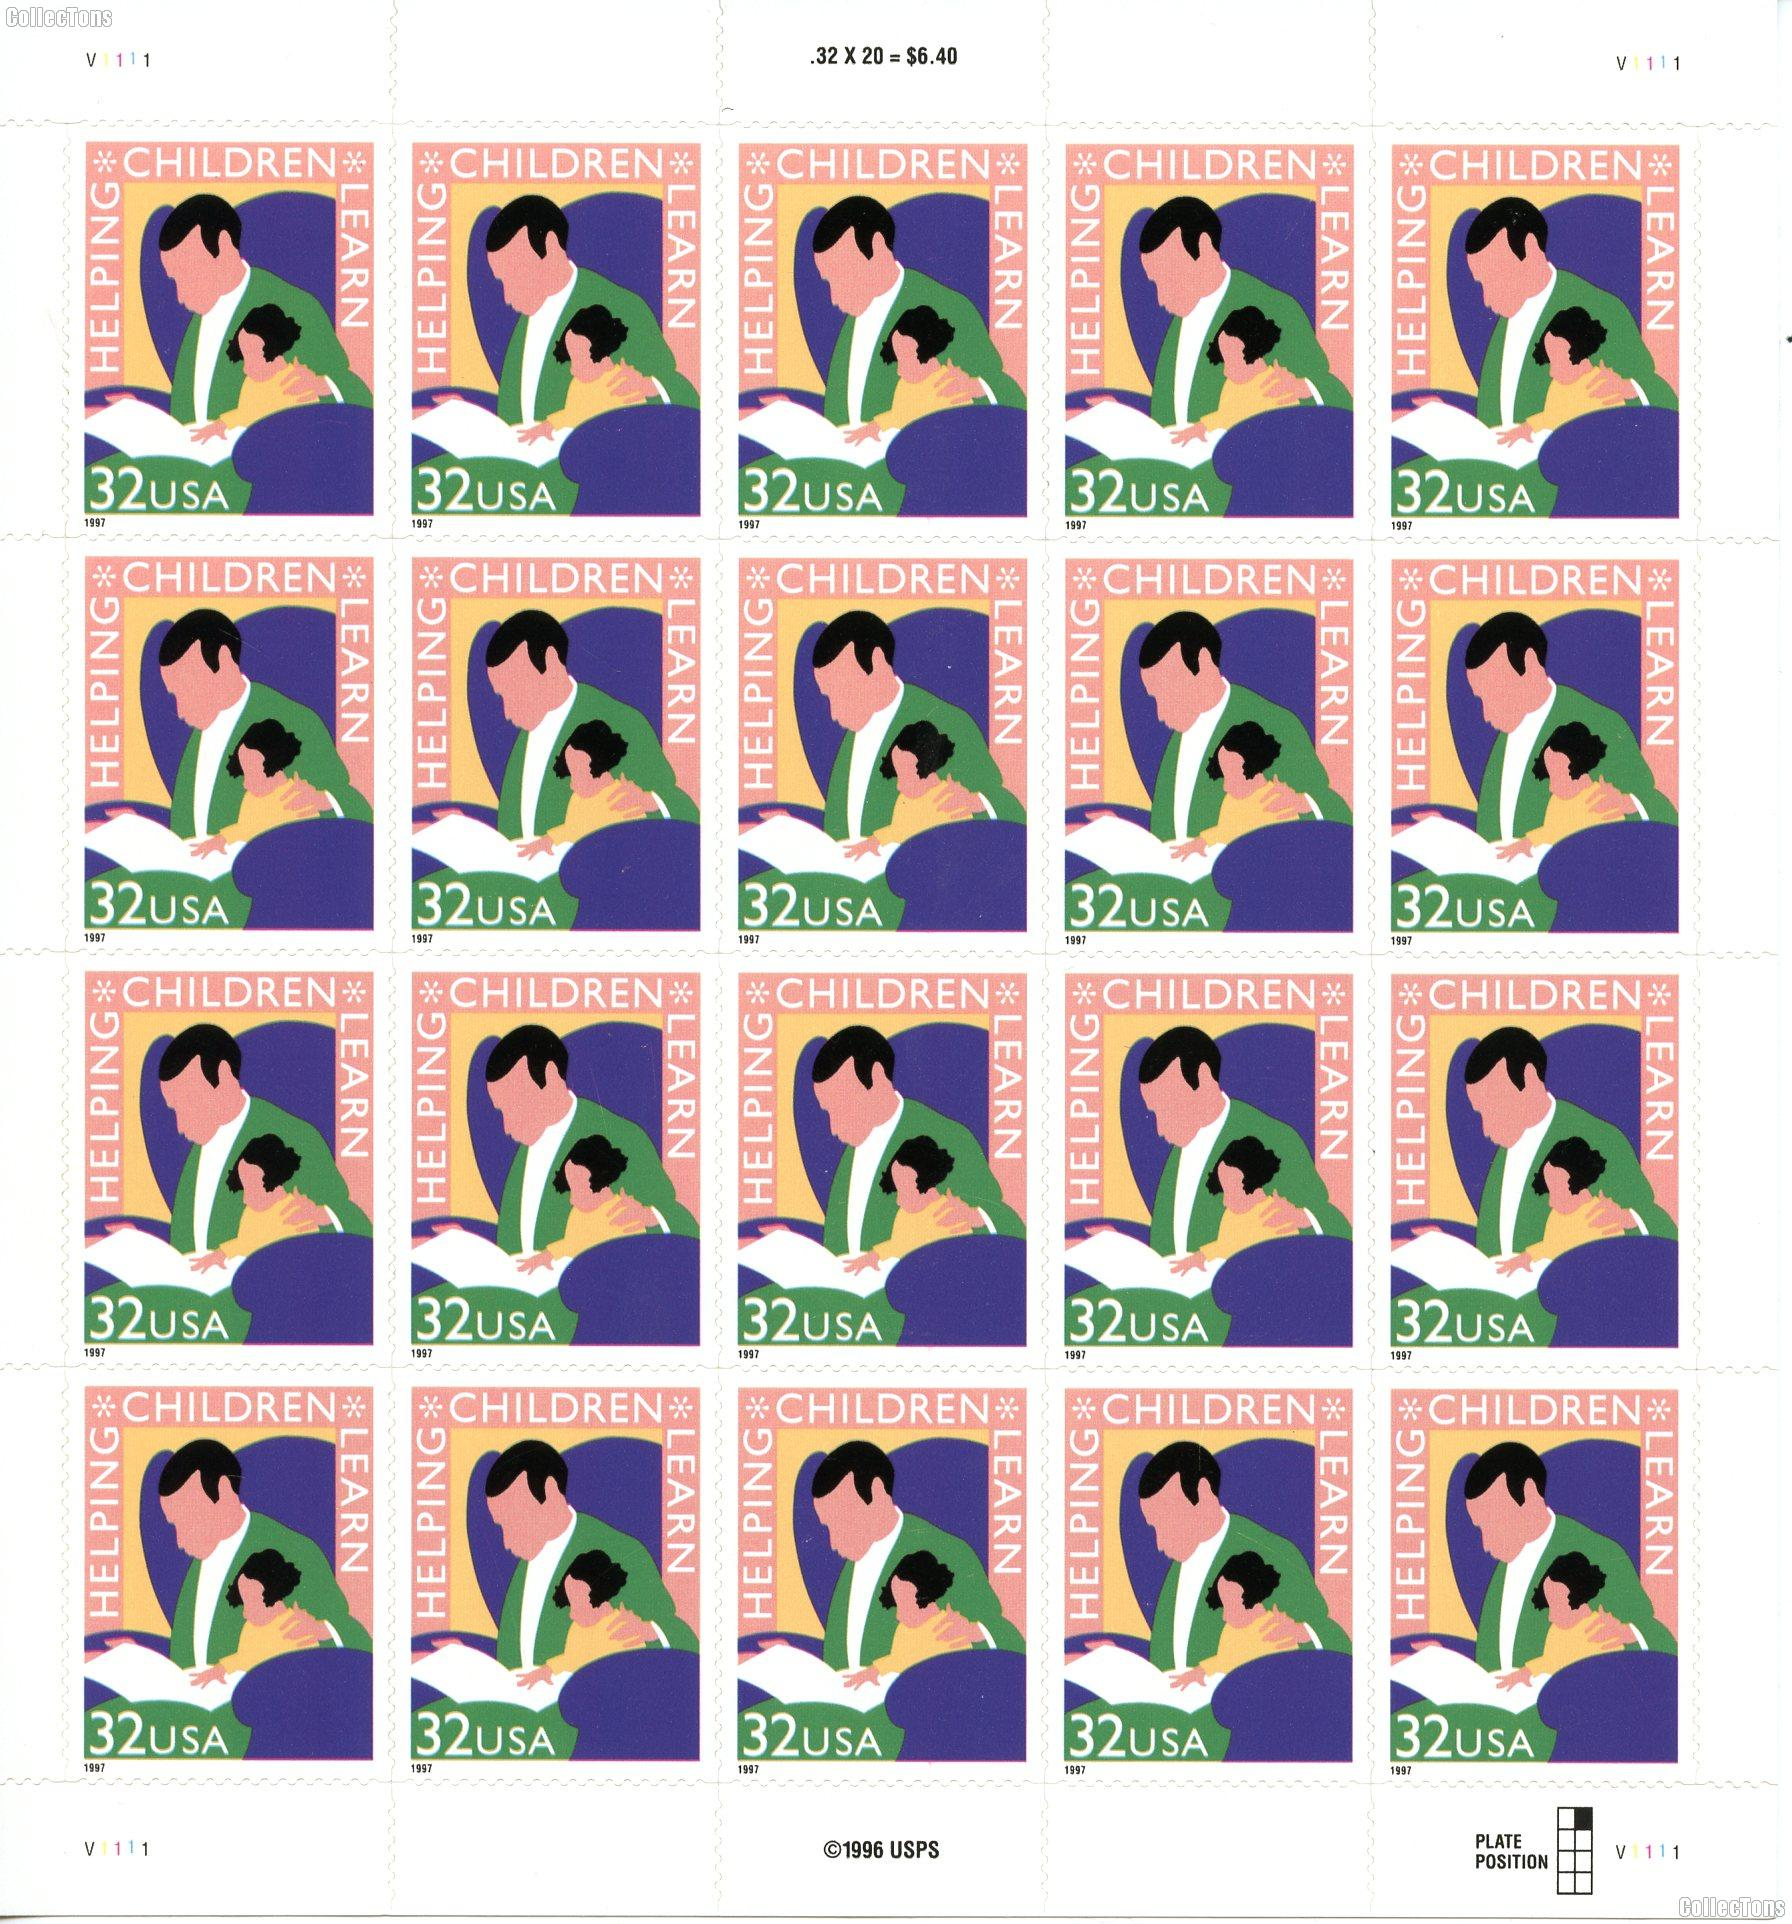 1997 Helping Children Learn 32 Cent US Postage Stamp Unused Sheet of 20 Scott #3125